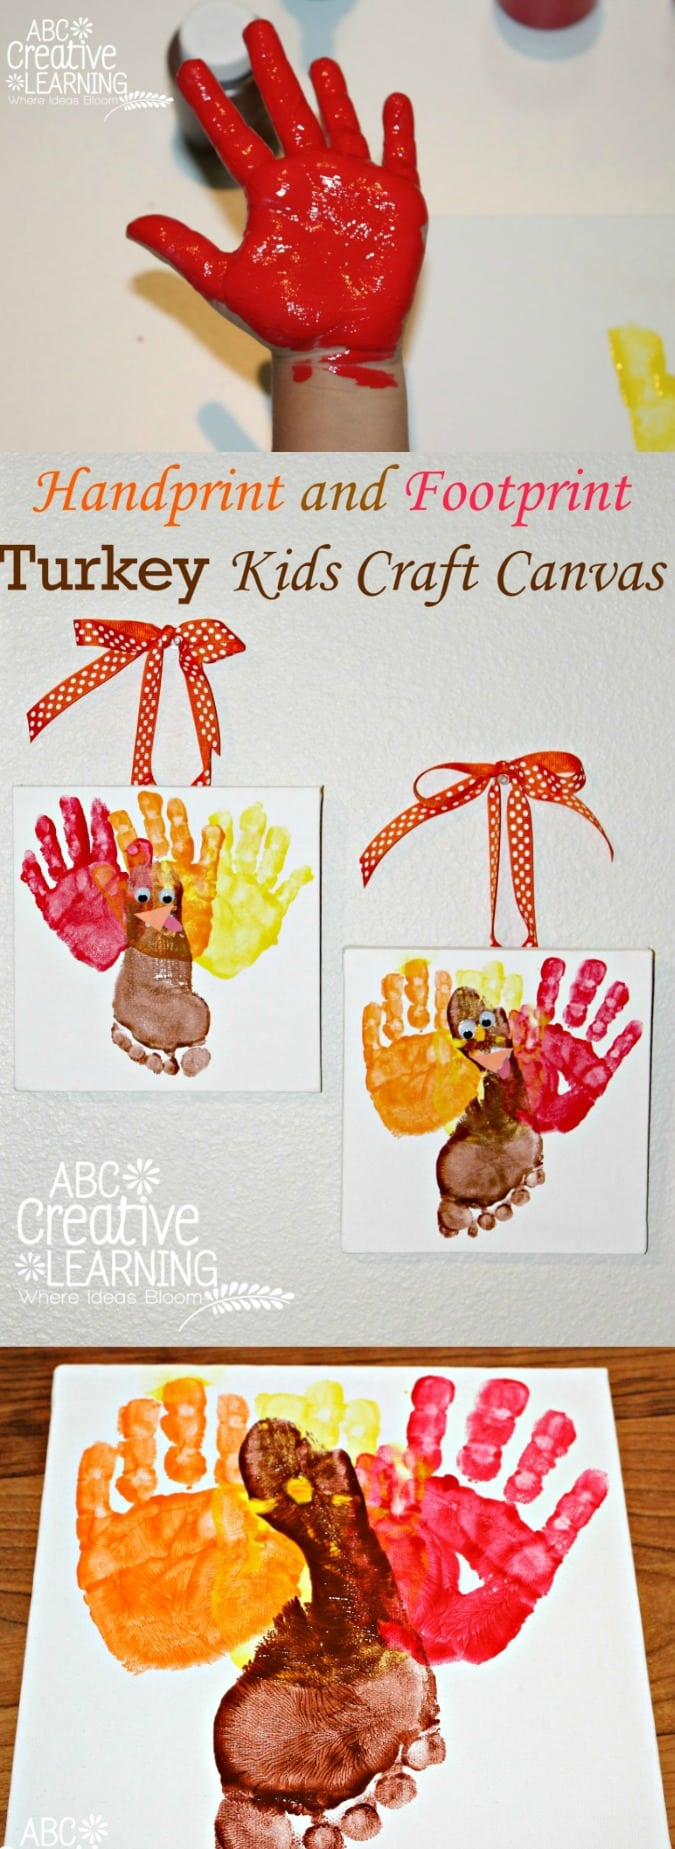 Handprint and Footprint Turkey Kids Craft Canvas - simplytodaylife.com